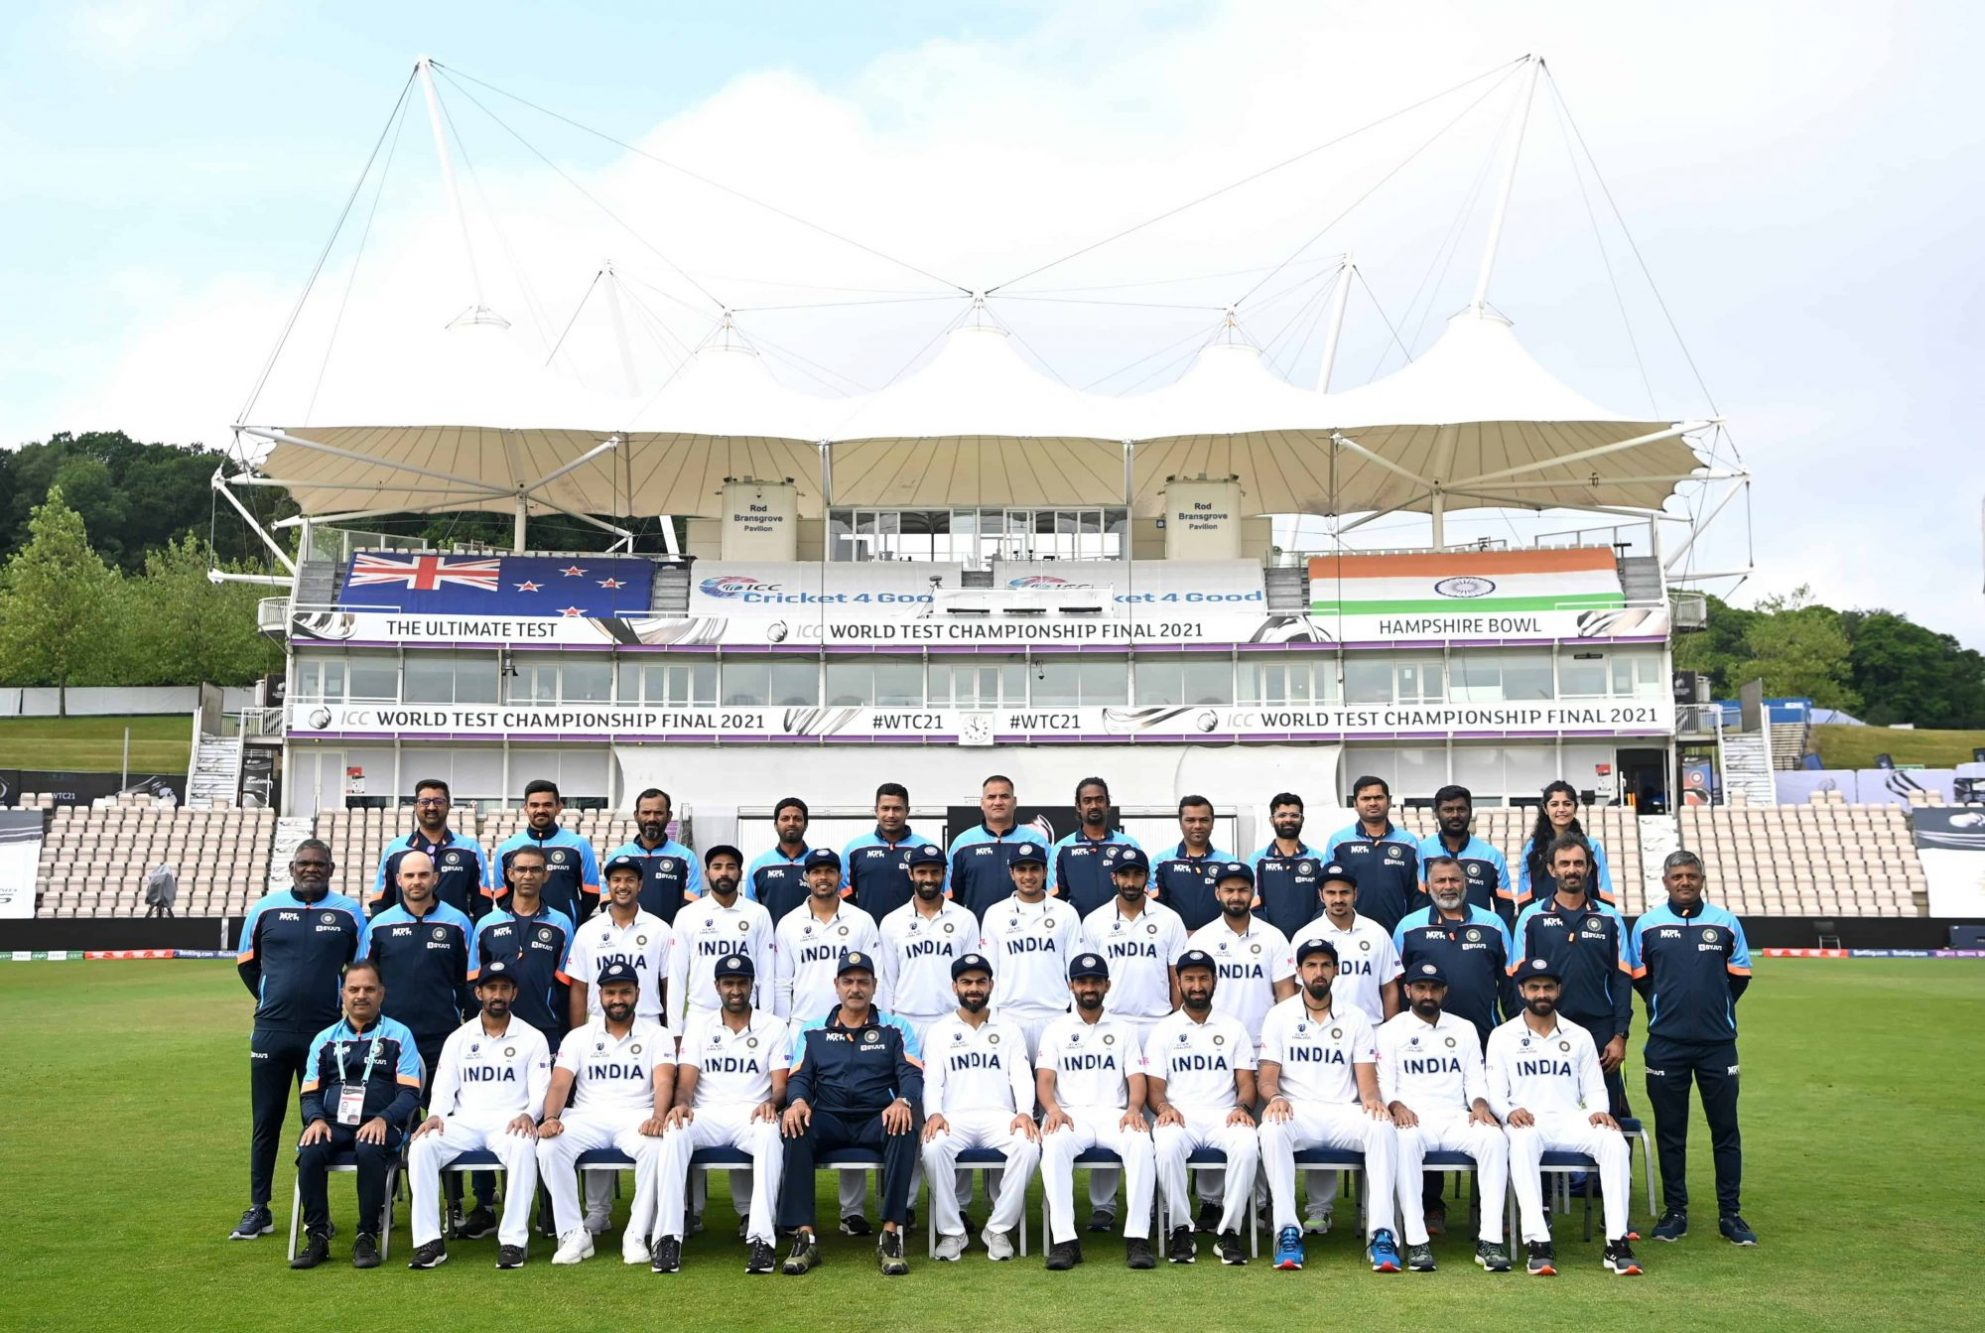 Team India Announces Final Playing XI For World Test Championship (WTC) Final Against New Zealand